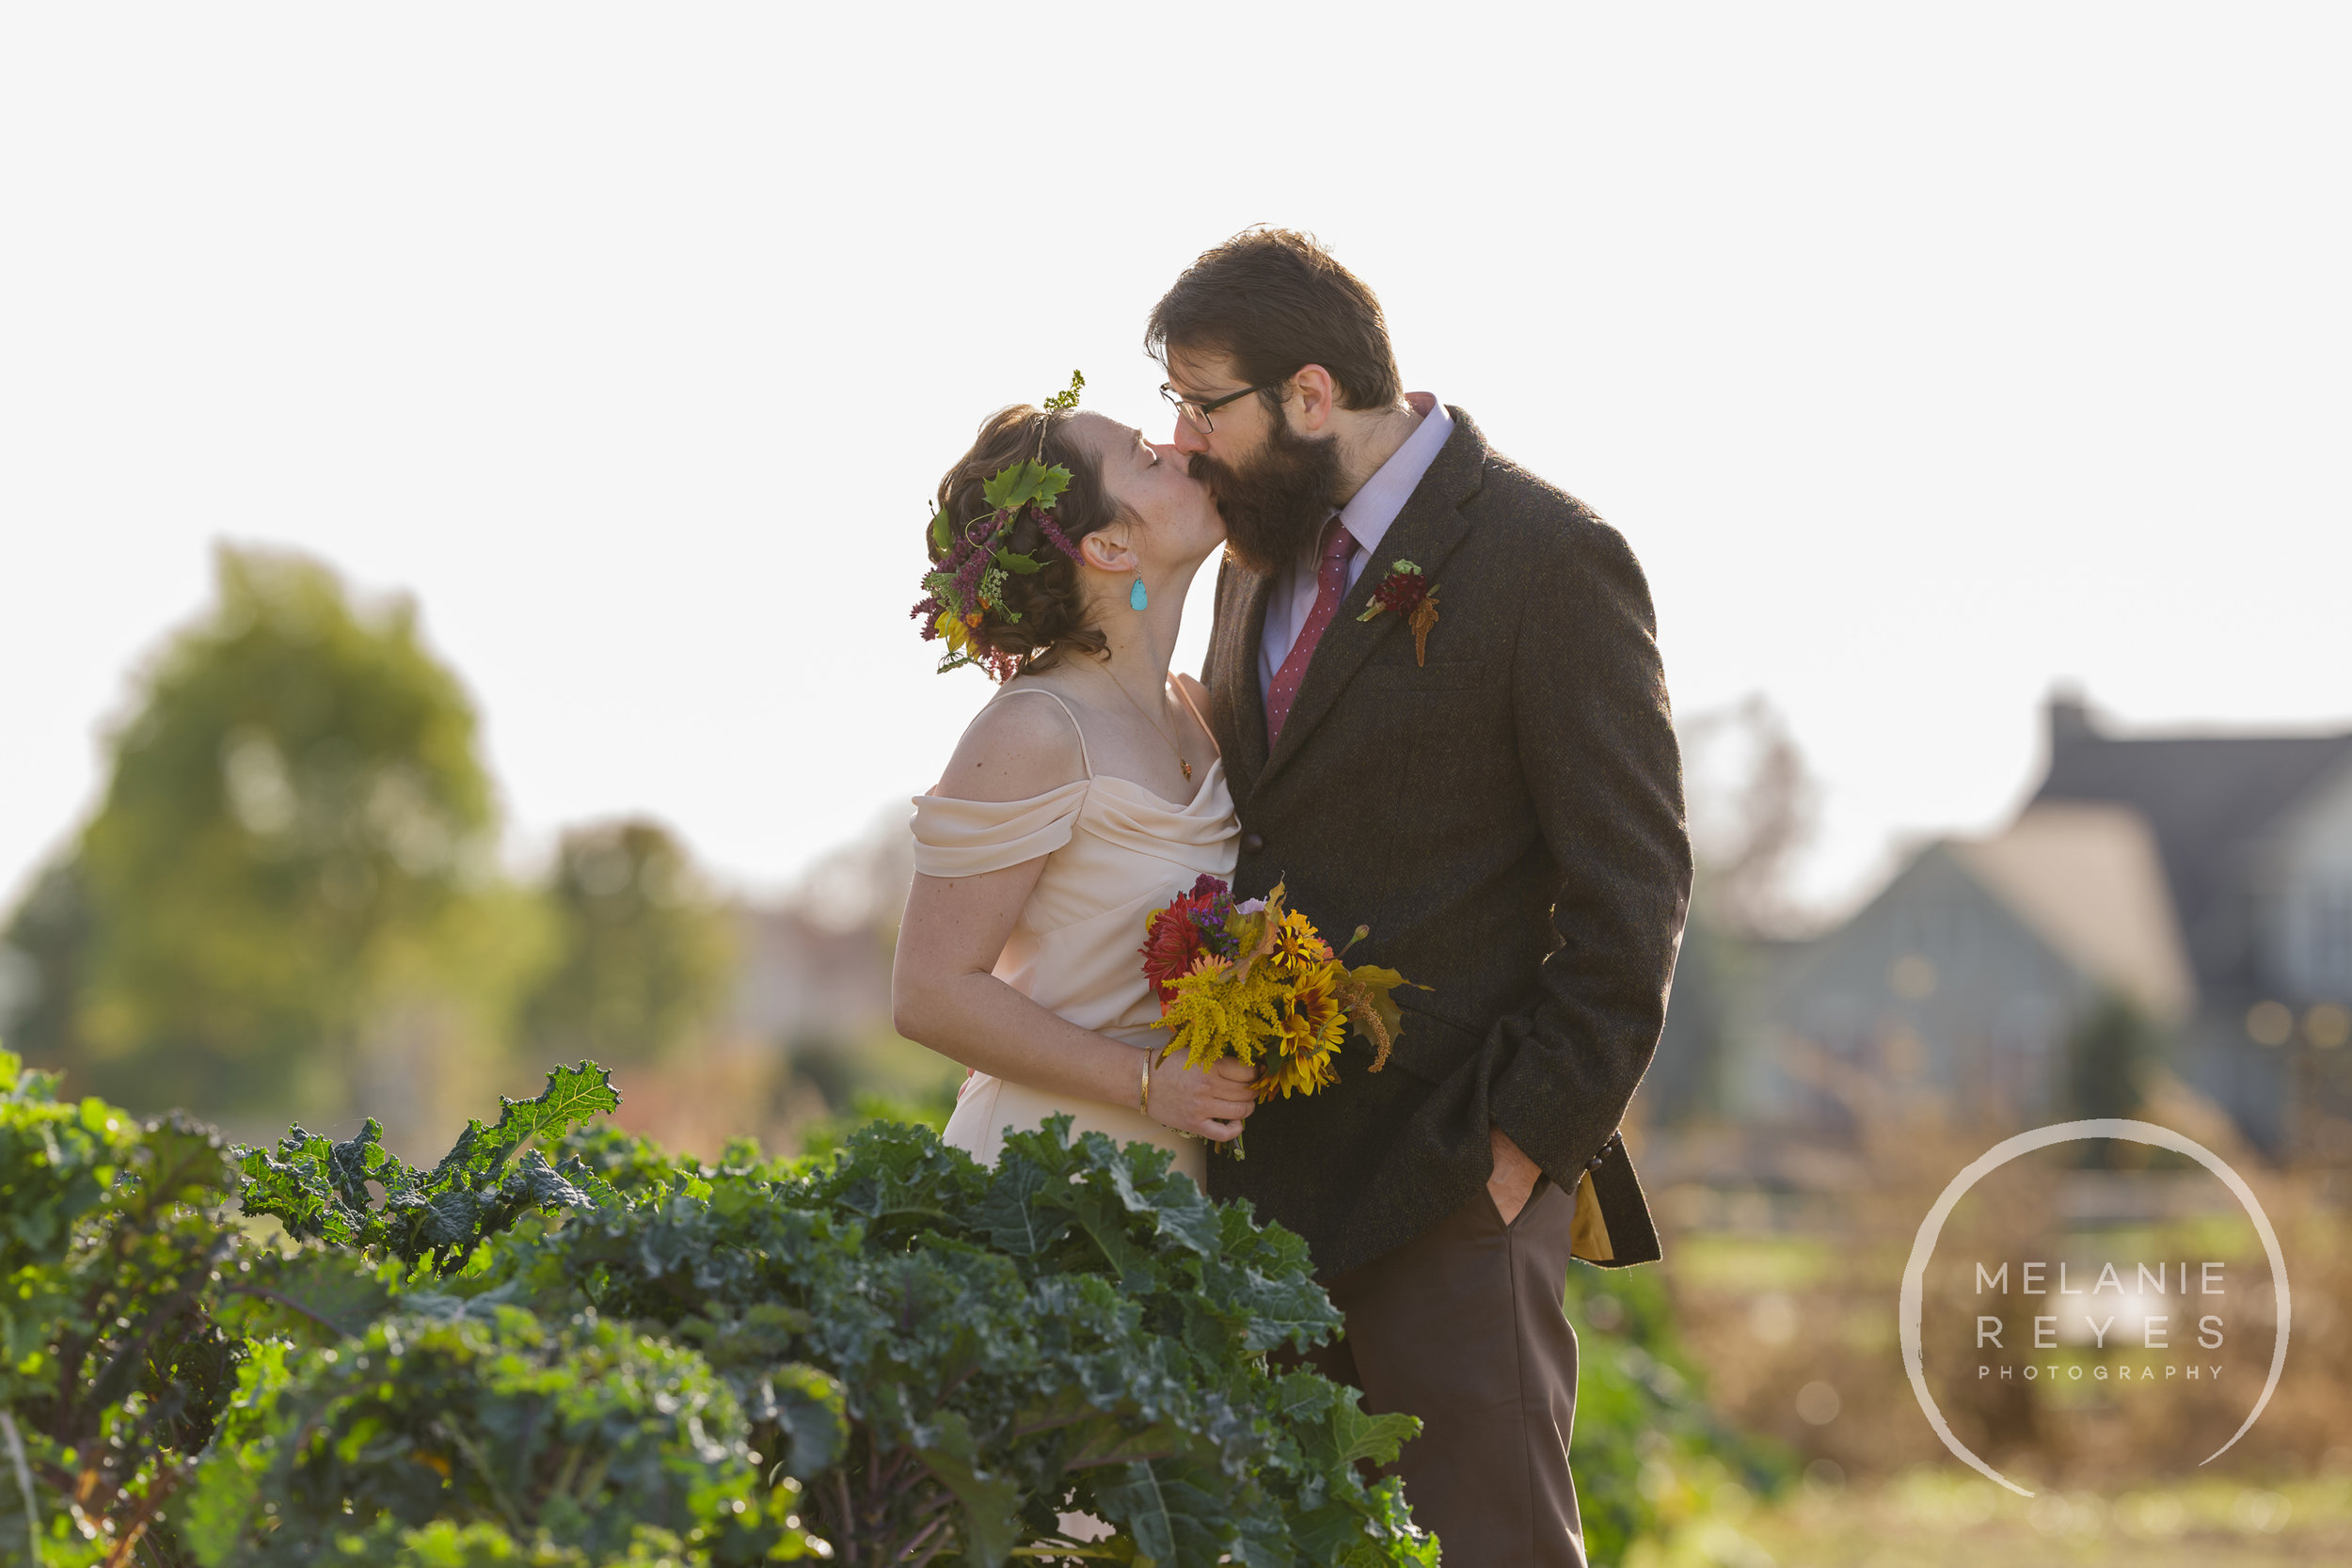 zingermans_cornman_farms_wedding_melanie_reyes_photography_010.JPG